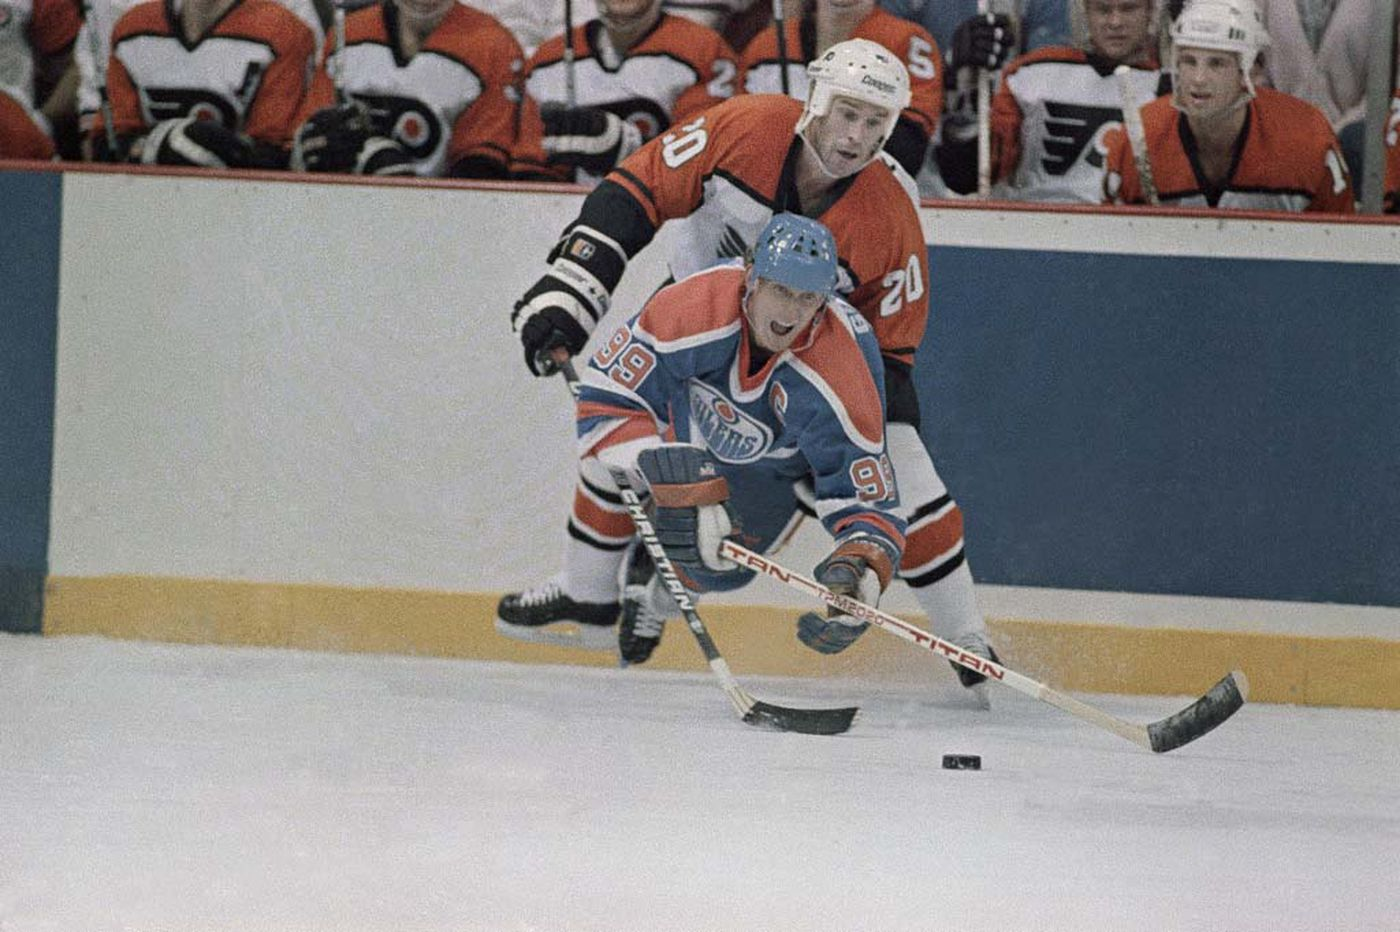 'Flyers Decades' debuts Thursday and tries to fill the void for life without hockey